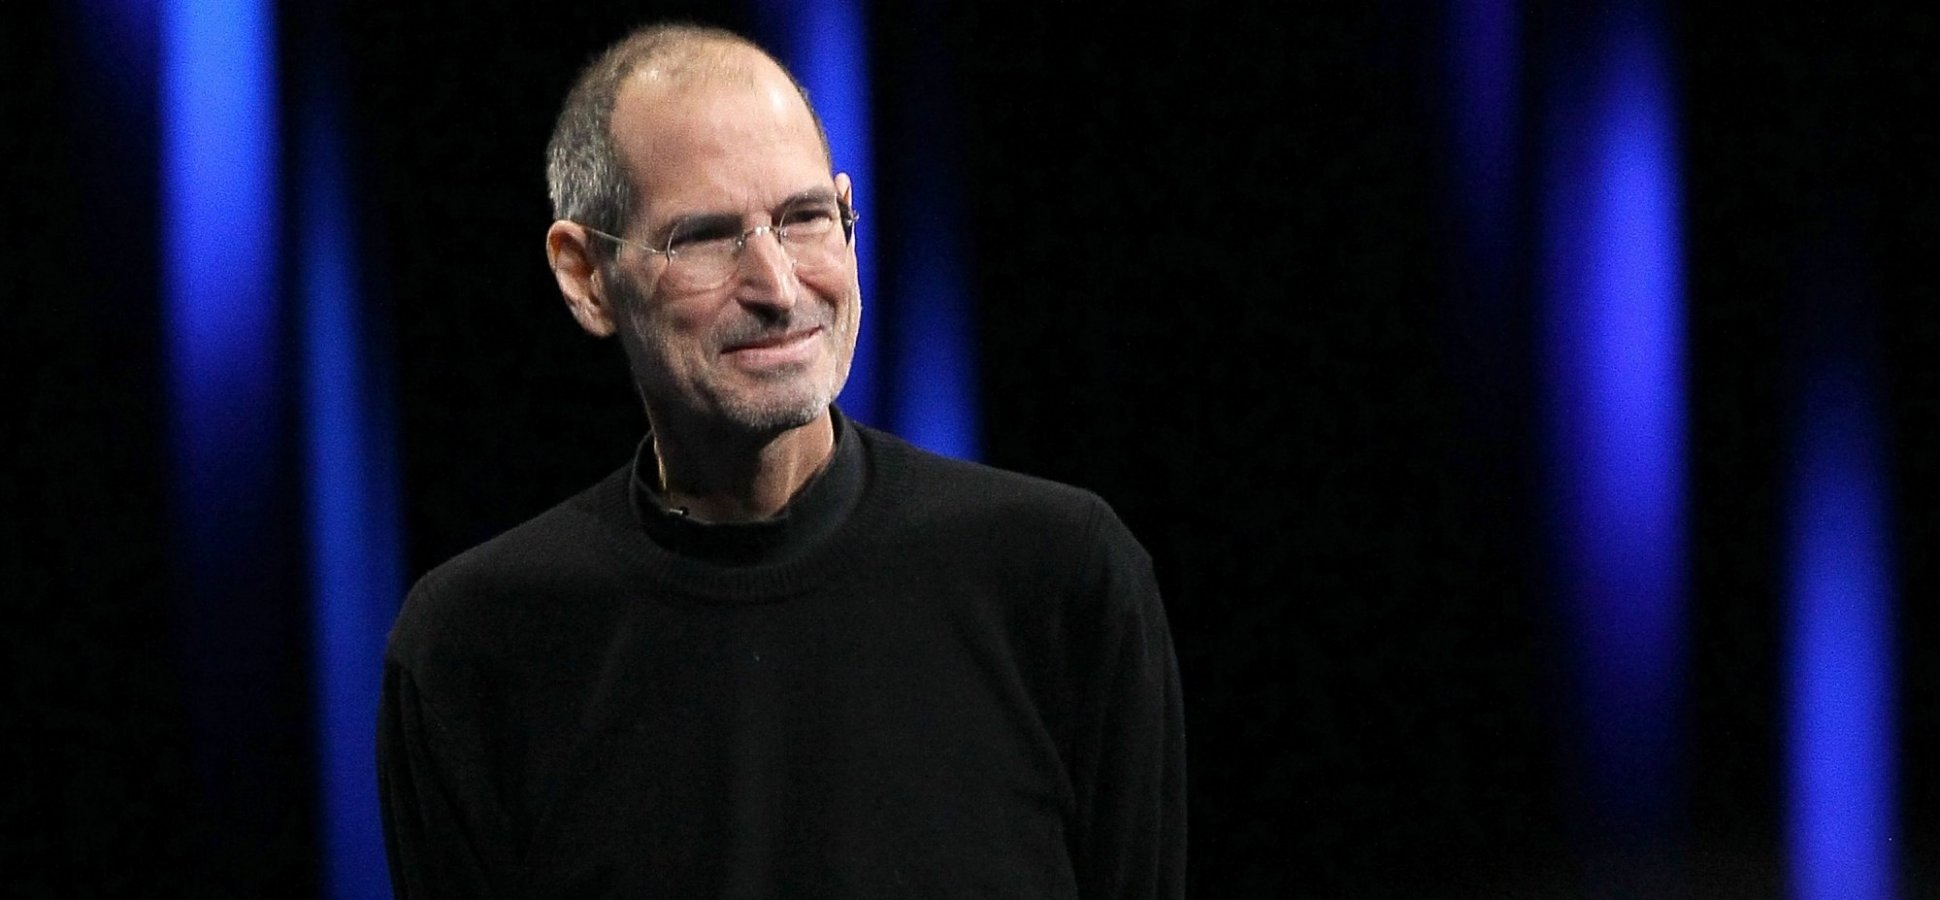 Steve Jobs Says There Is 1 Simple Habit That Separates The Doers from The Dreamers (and Leads to Great Success)